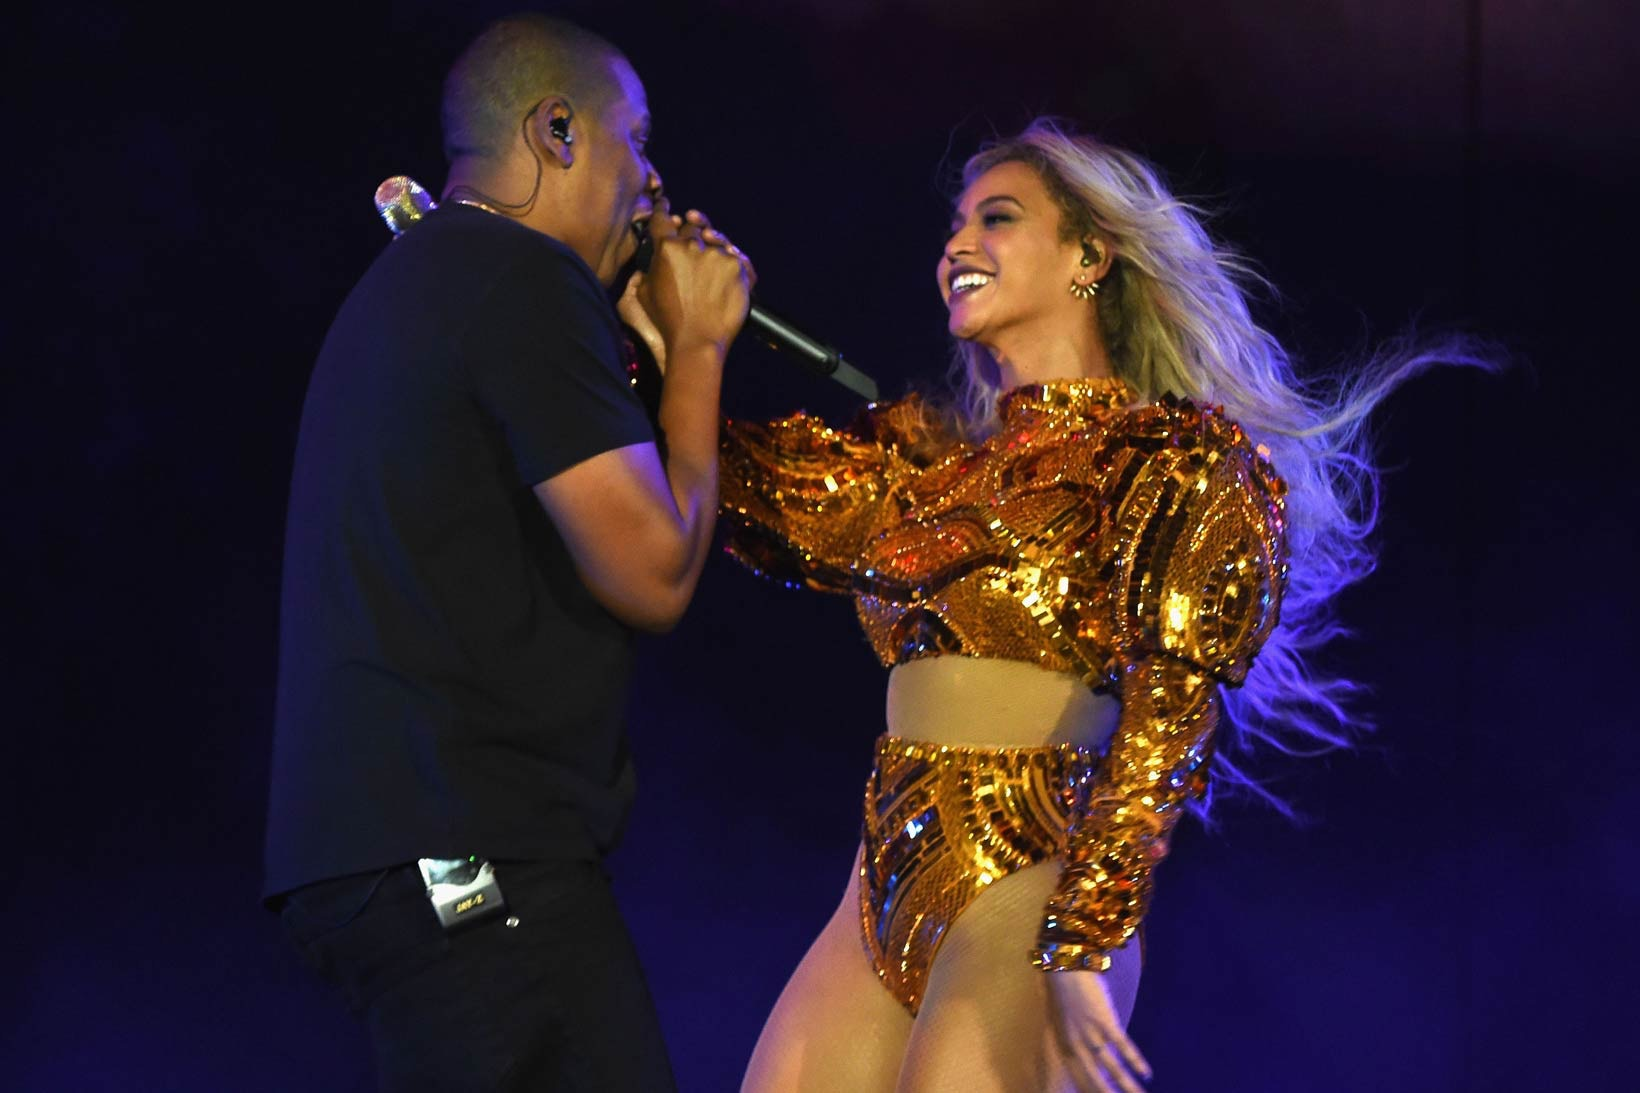 beyonce-jay-z-tour-on-the-run-2-1.jpg